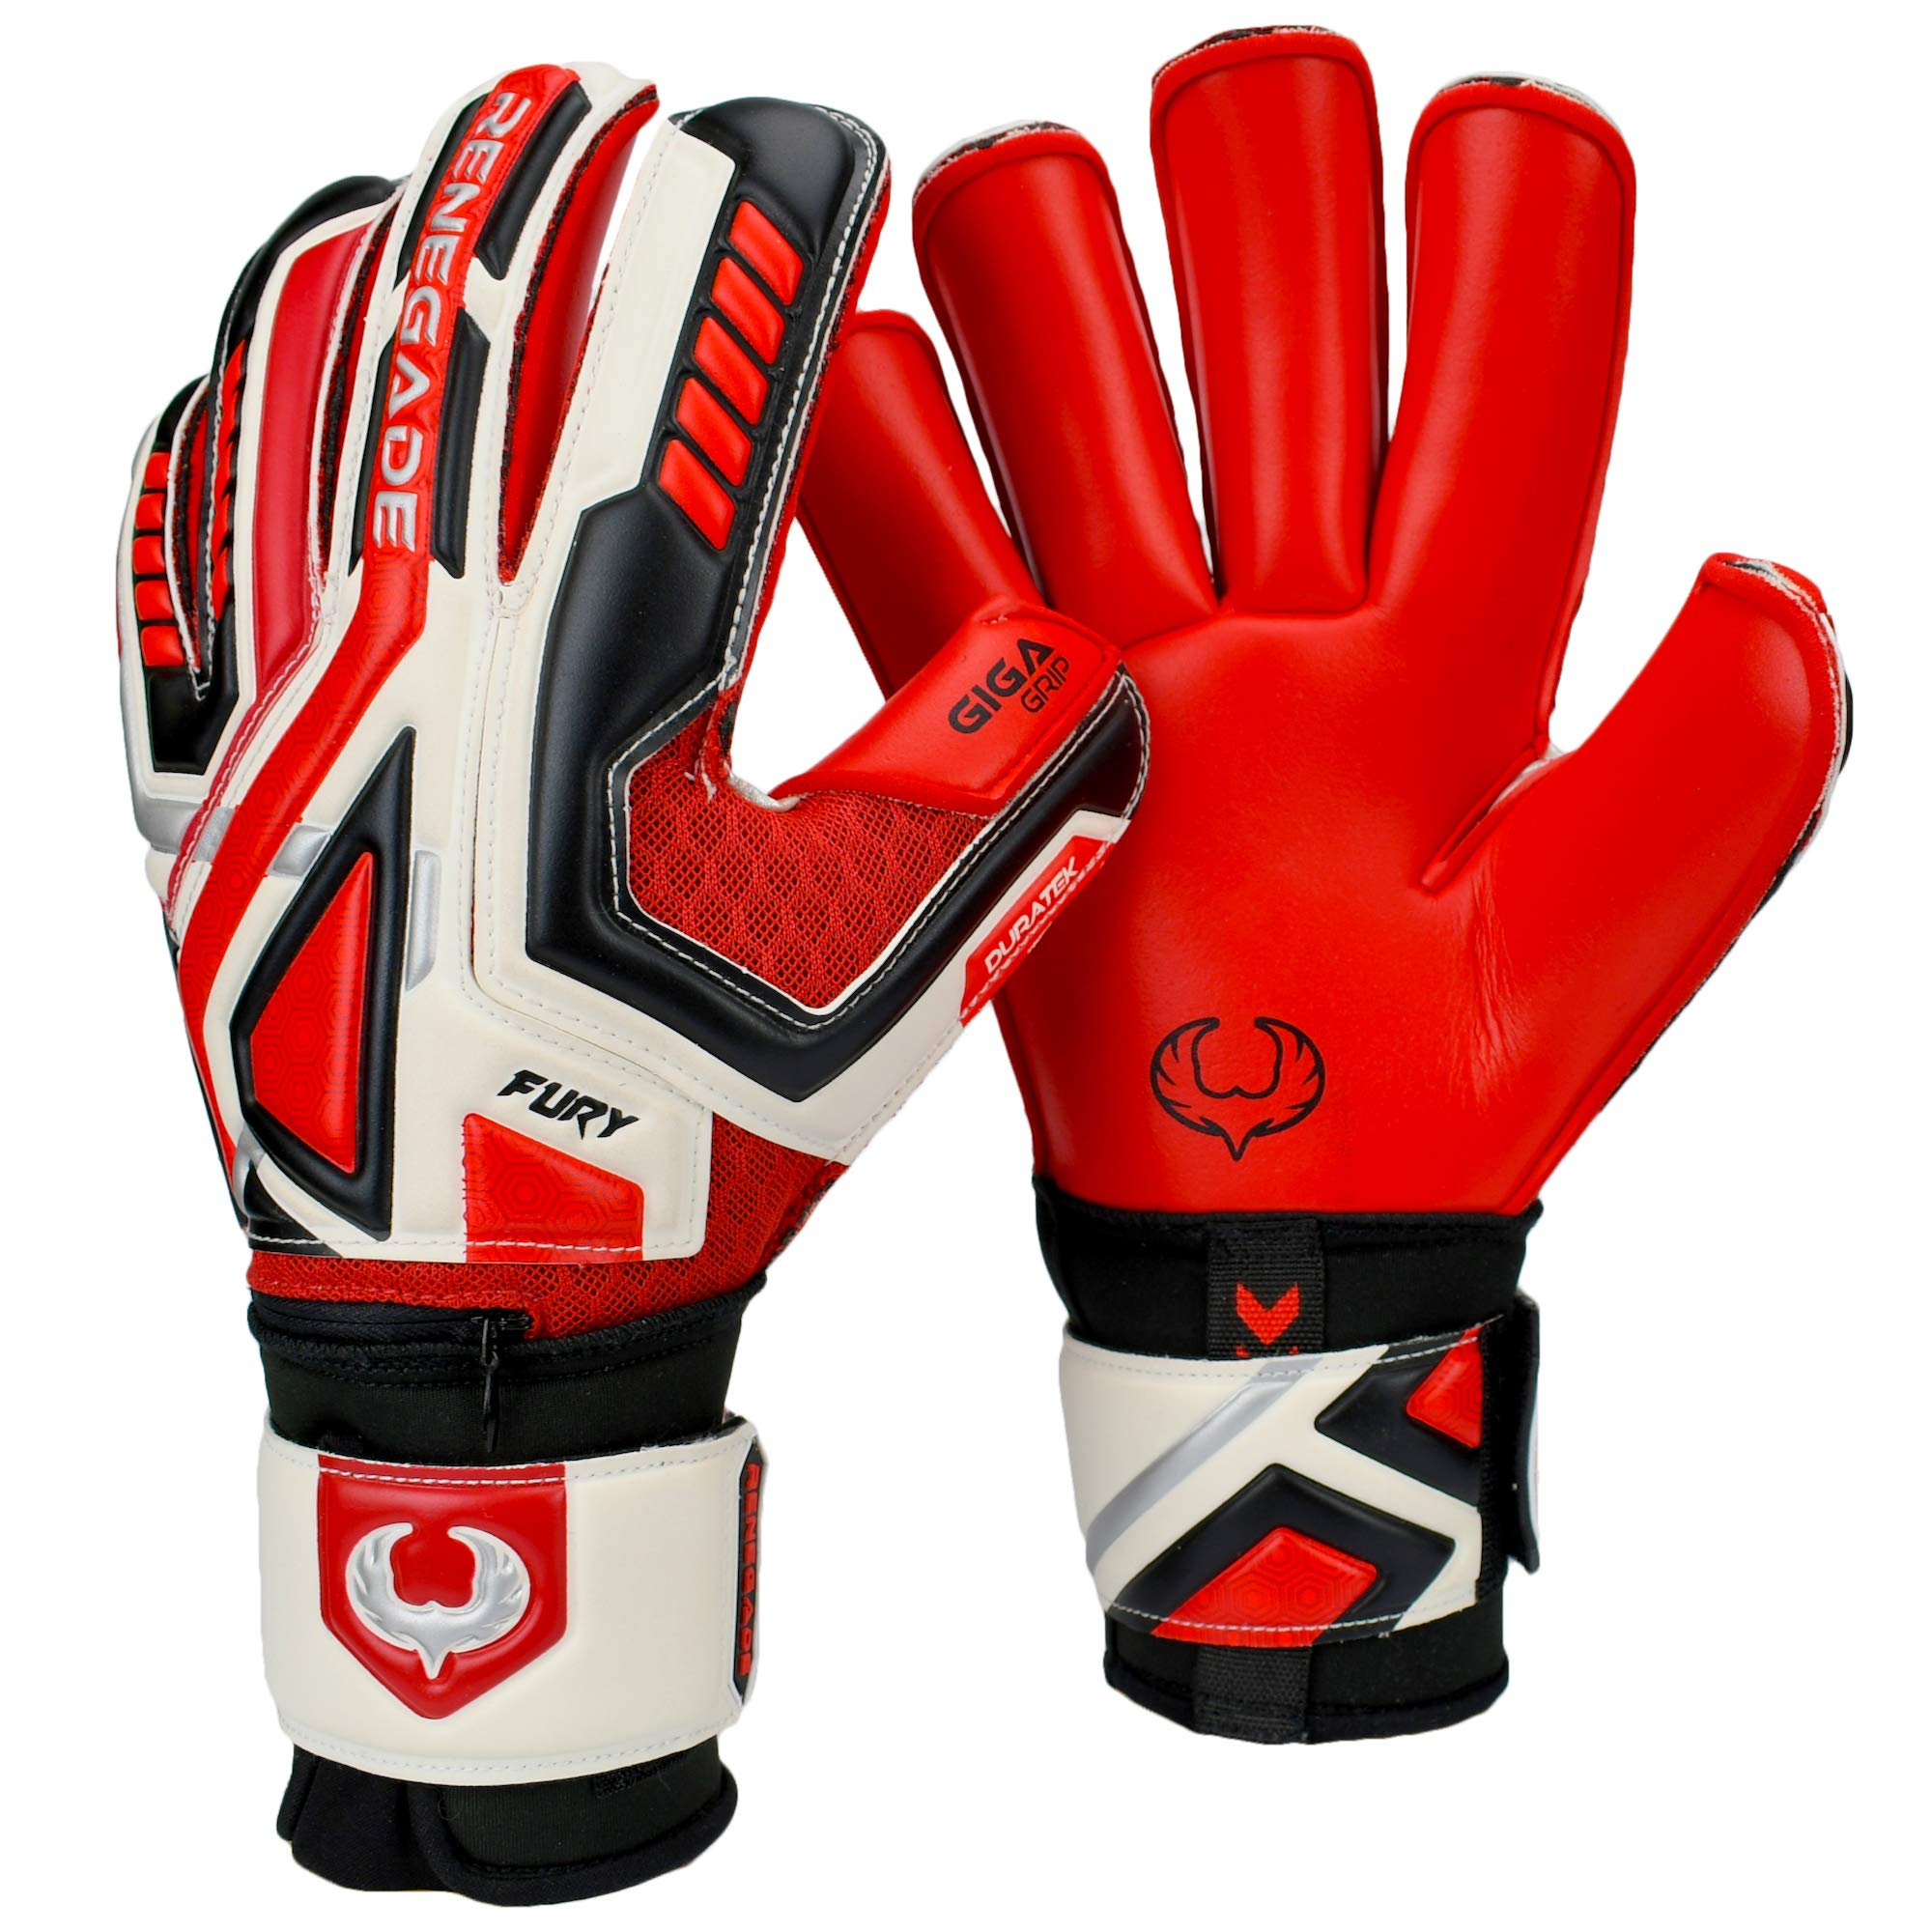 Renegade GK Fury Inferno Roll Cut Level 4 Goalkeeper Gloves Youth & Adult with Fingersaves - Youth Goalie Gloves Soccer - Goalkeeper Gloves Size 7 - Black, Silver, White, Red Goalie Gloves